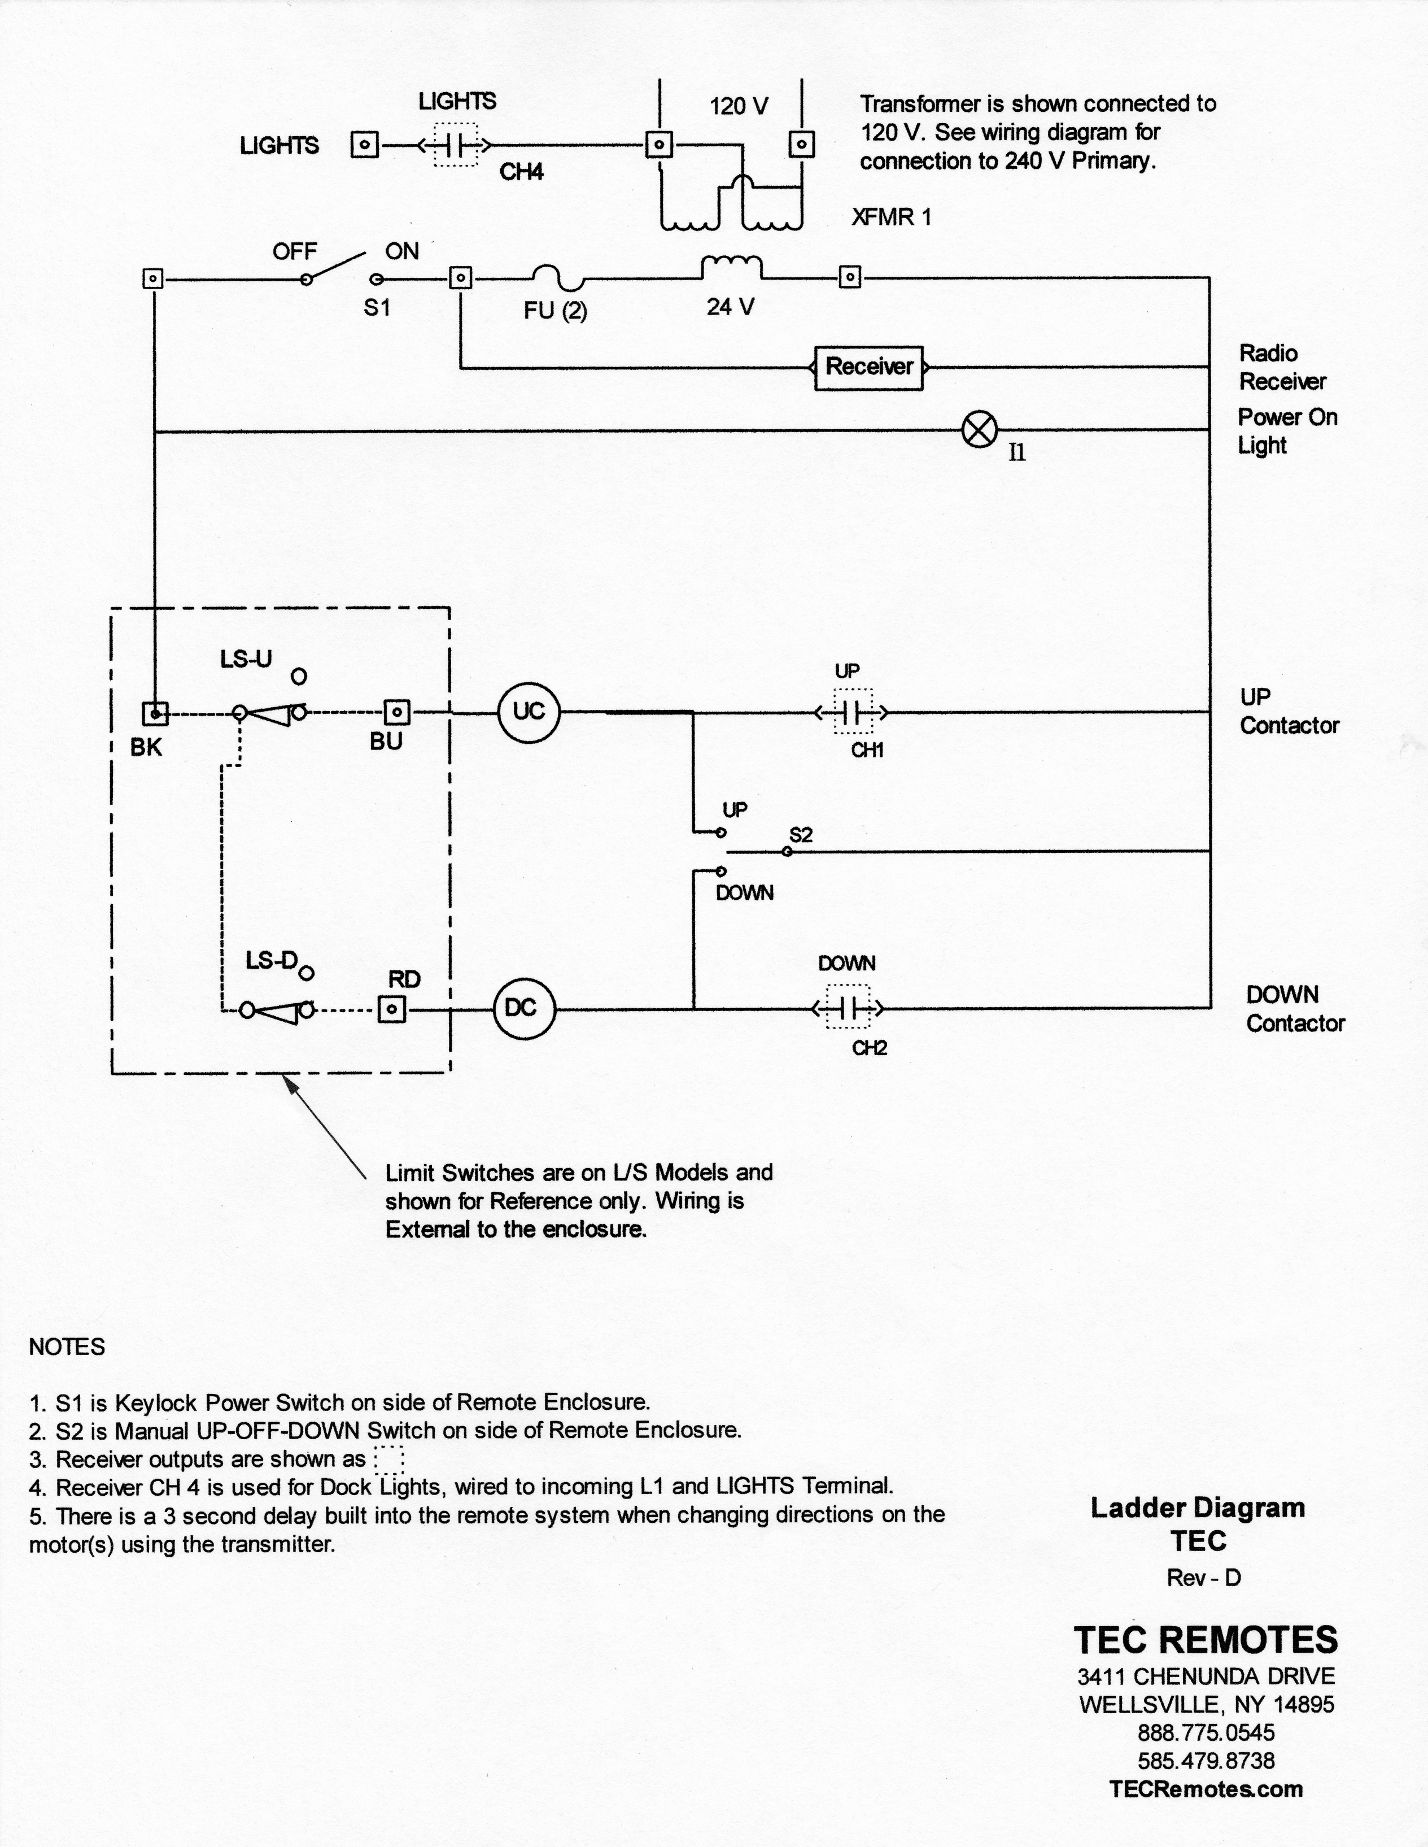 Limit Switch Wiring Diagram Terminal 5 Books Of Blower Images Gallery Installation Rh Tecremotes Com